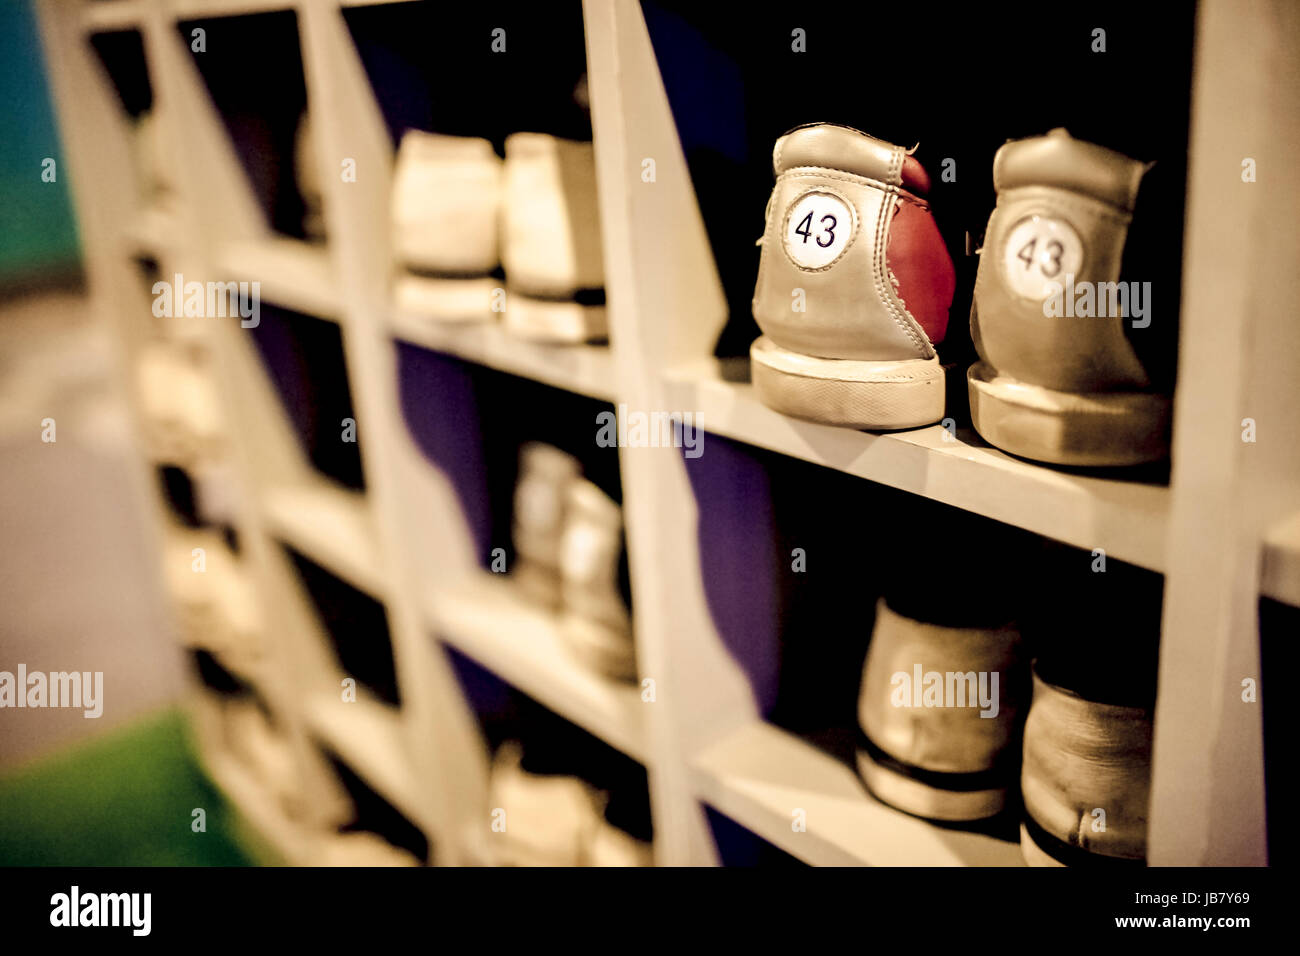 Shoe Cupboard Stock Photos Amp Shoe Cupboard Stock Images